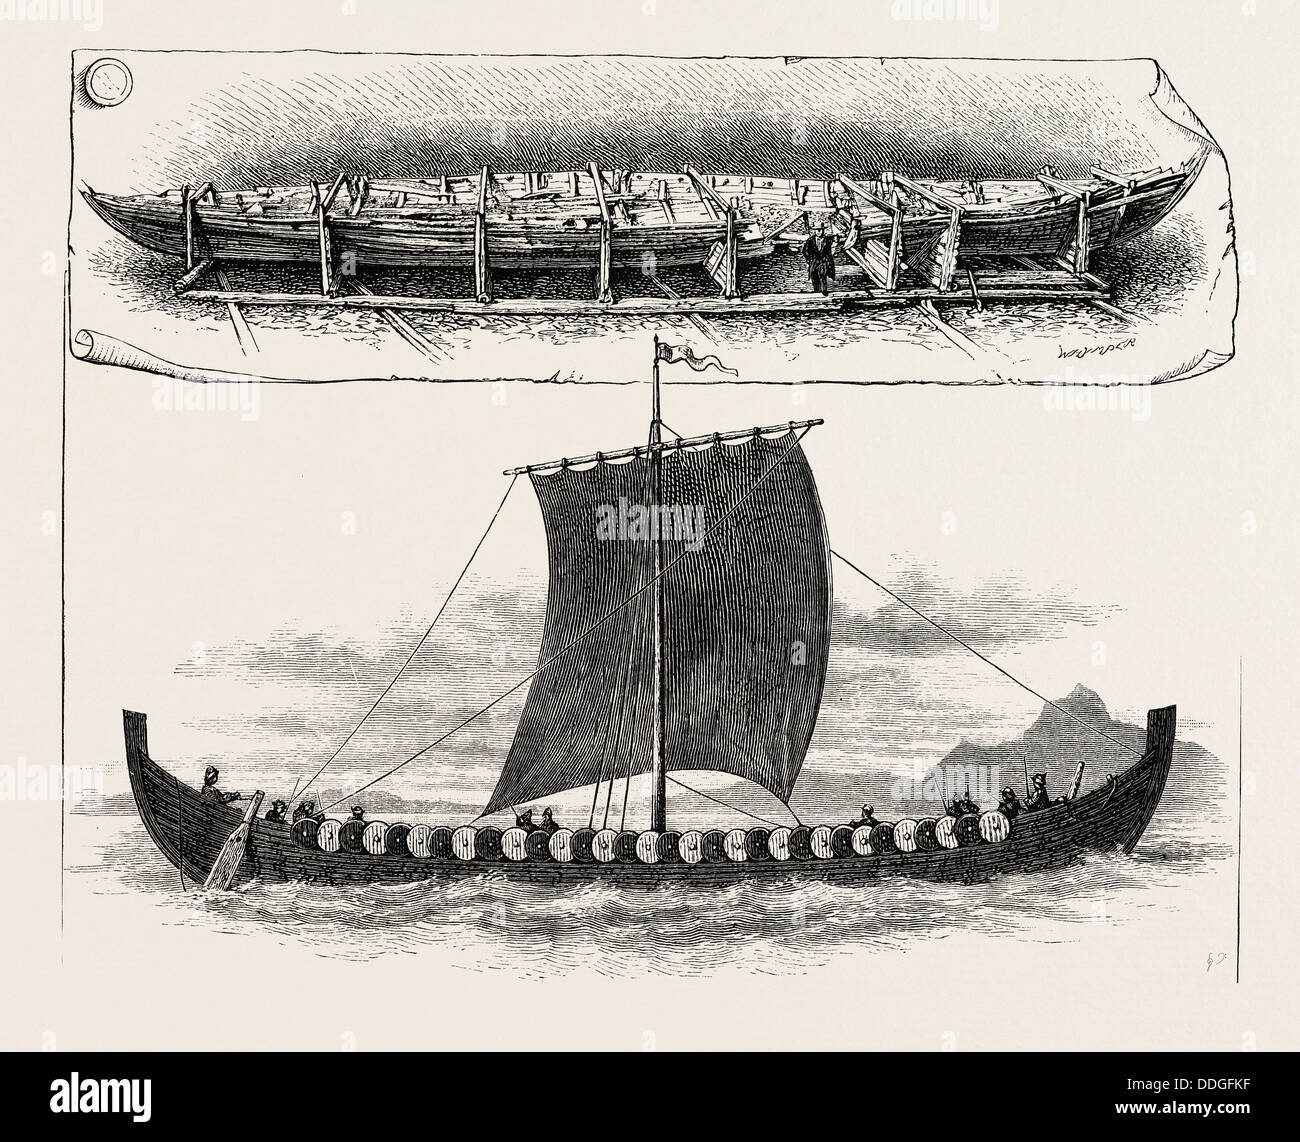 THE VIKING'S SHIP: THE VESSEL WHEN BROUGHT TO CHRISTIANIA; THE VESSEL AS SHE MUST HAVE LOOKED SAILING BEFORE - Stock Image